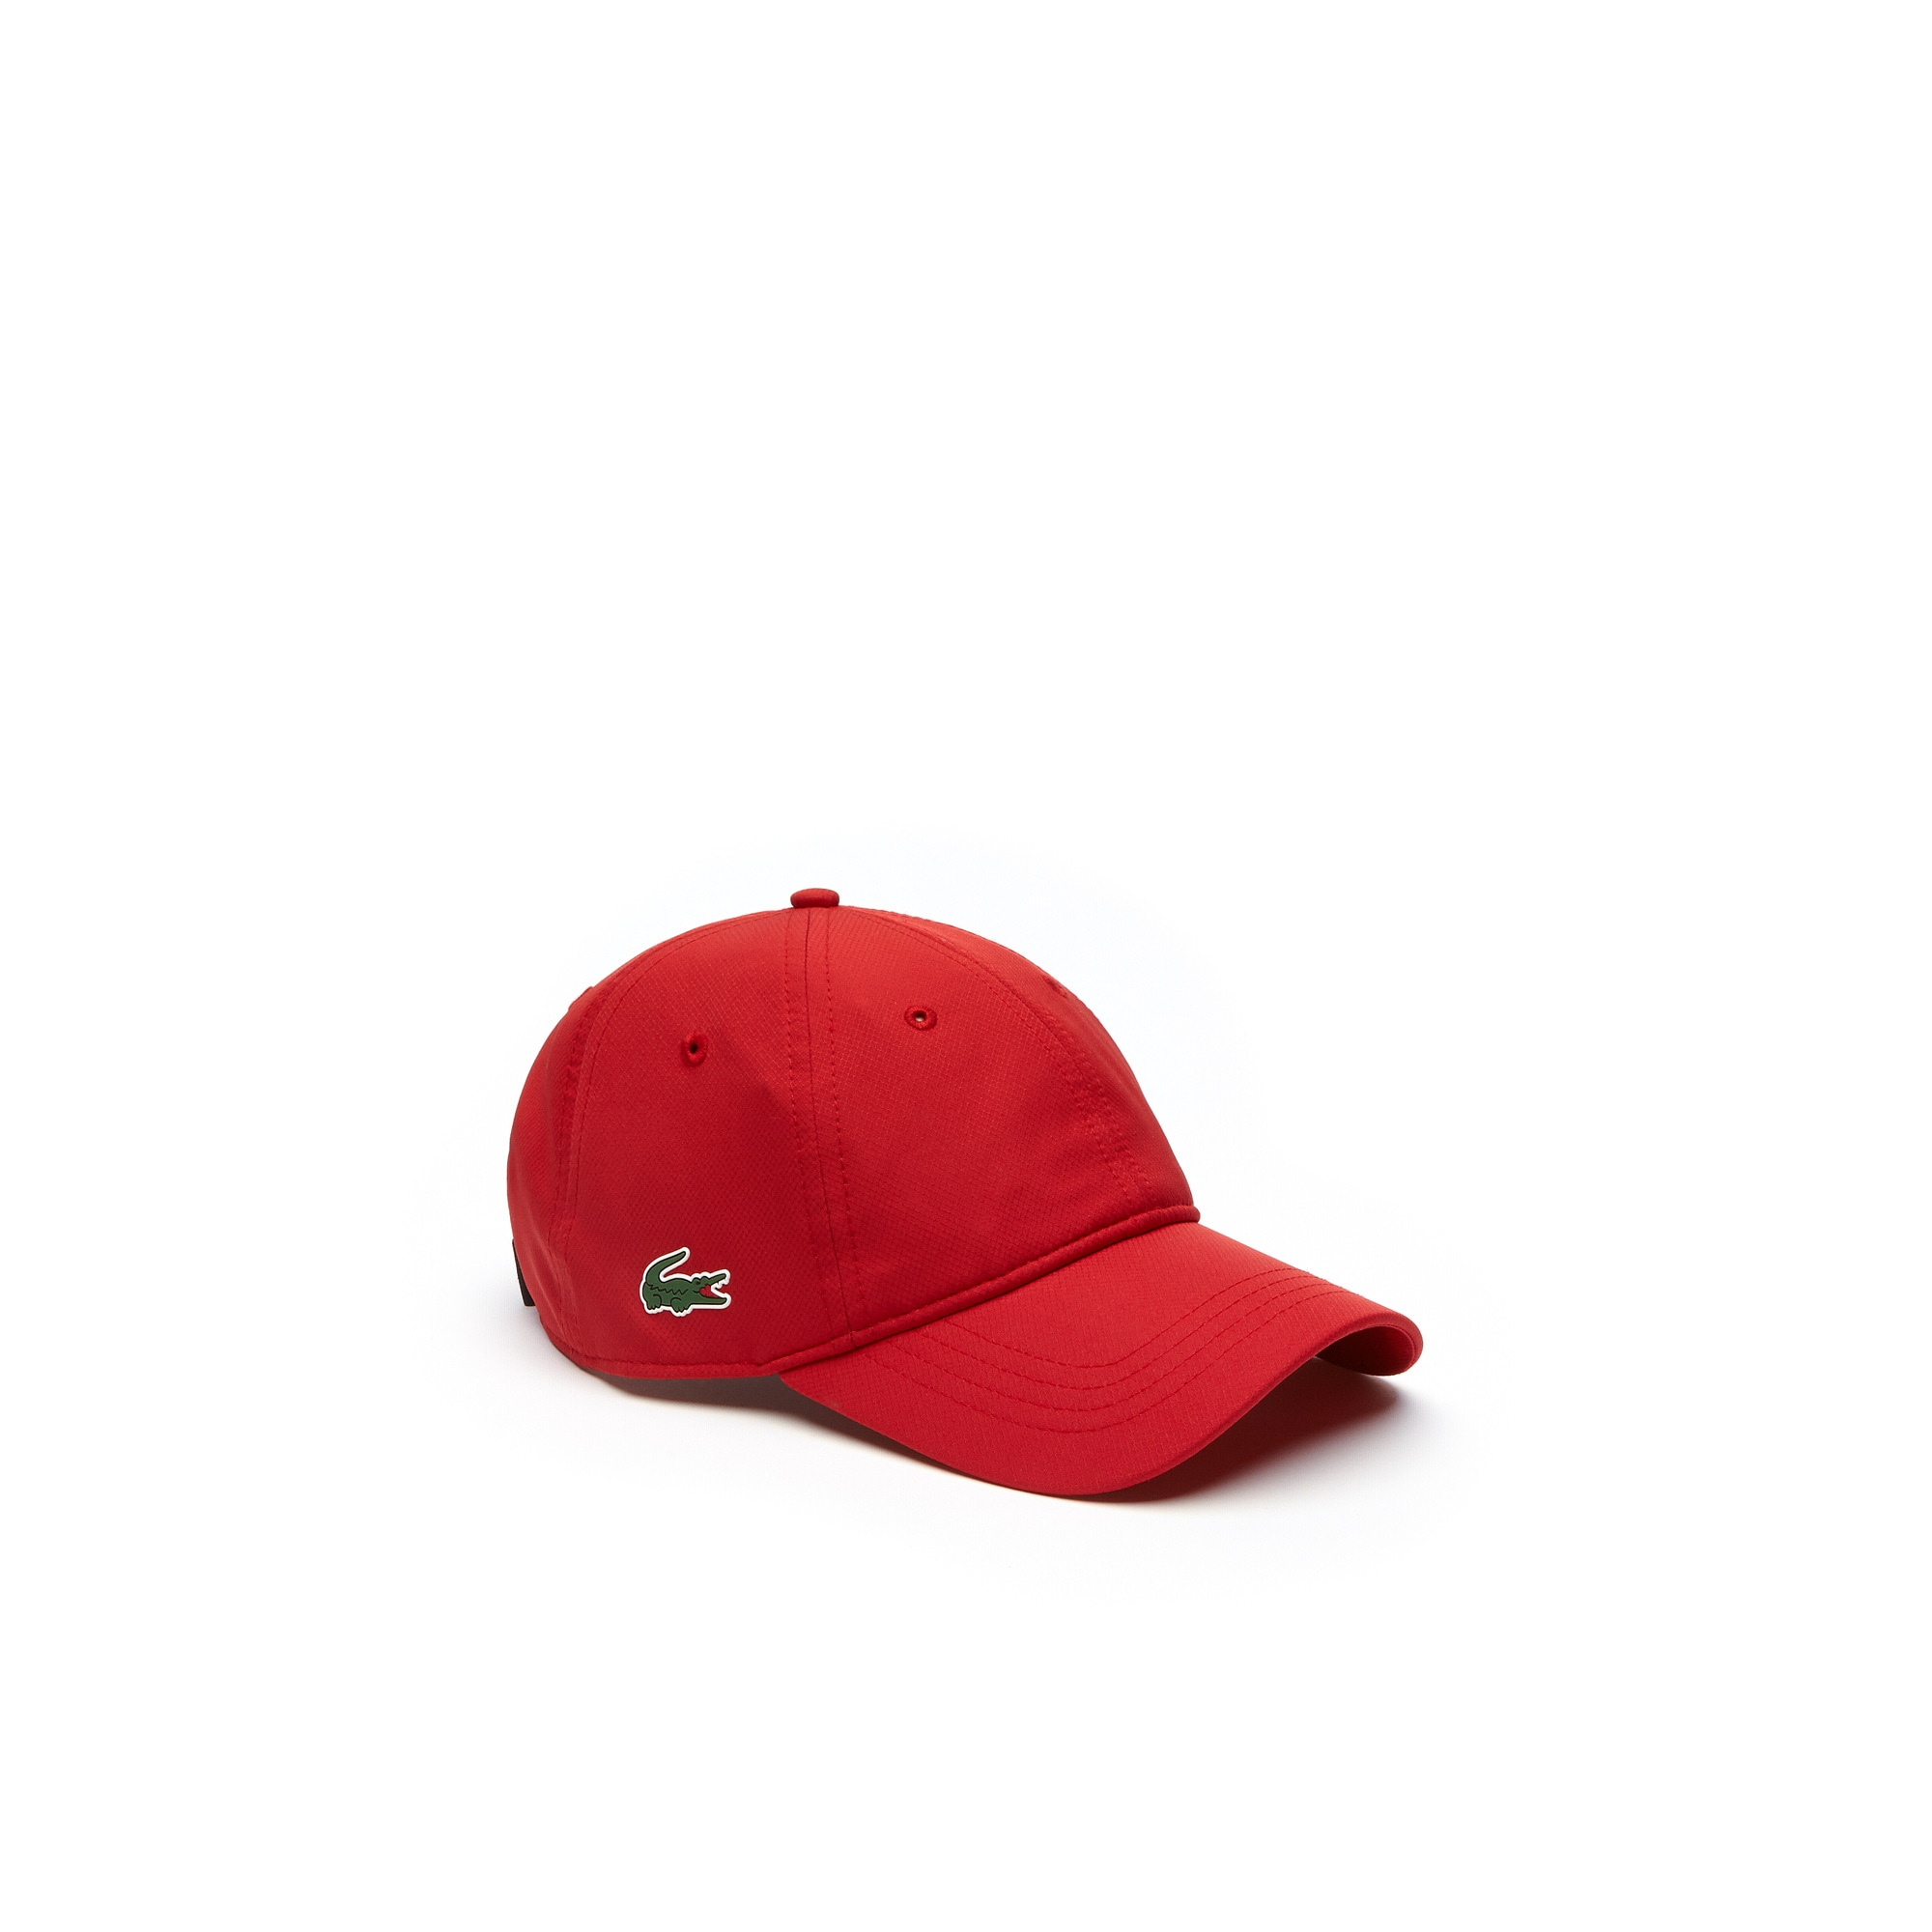 Lacoste Men S Sport Taffeta Cap In Lighthouse Red  ed269dca03b8